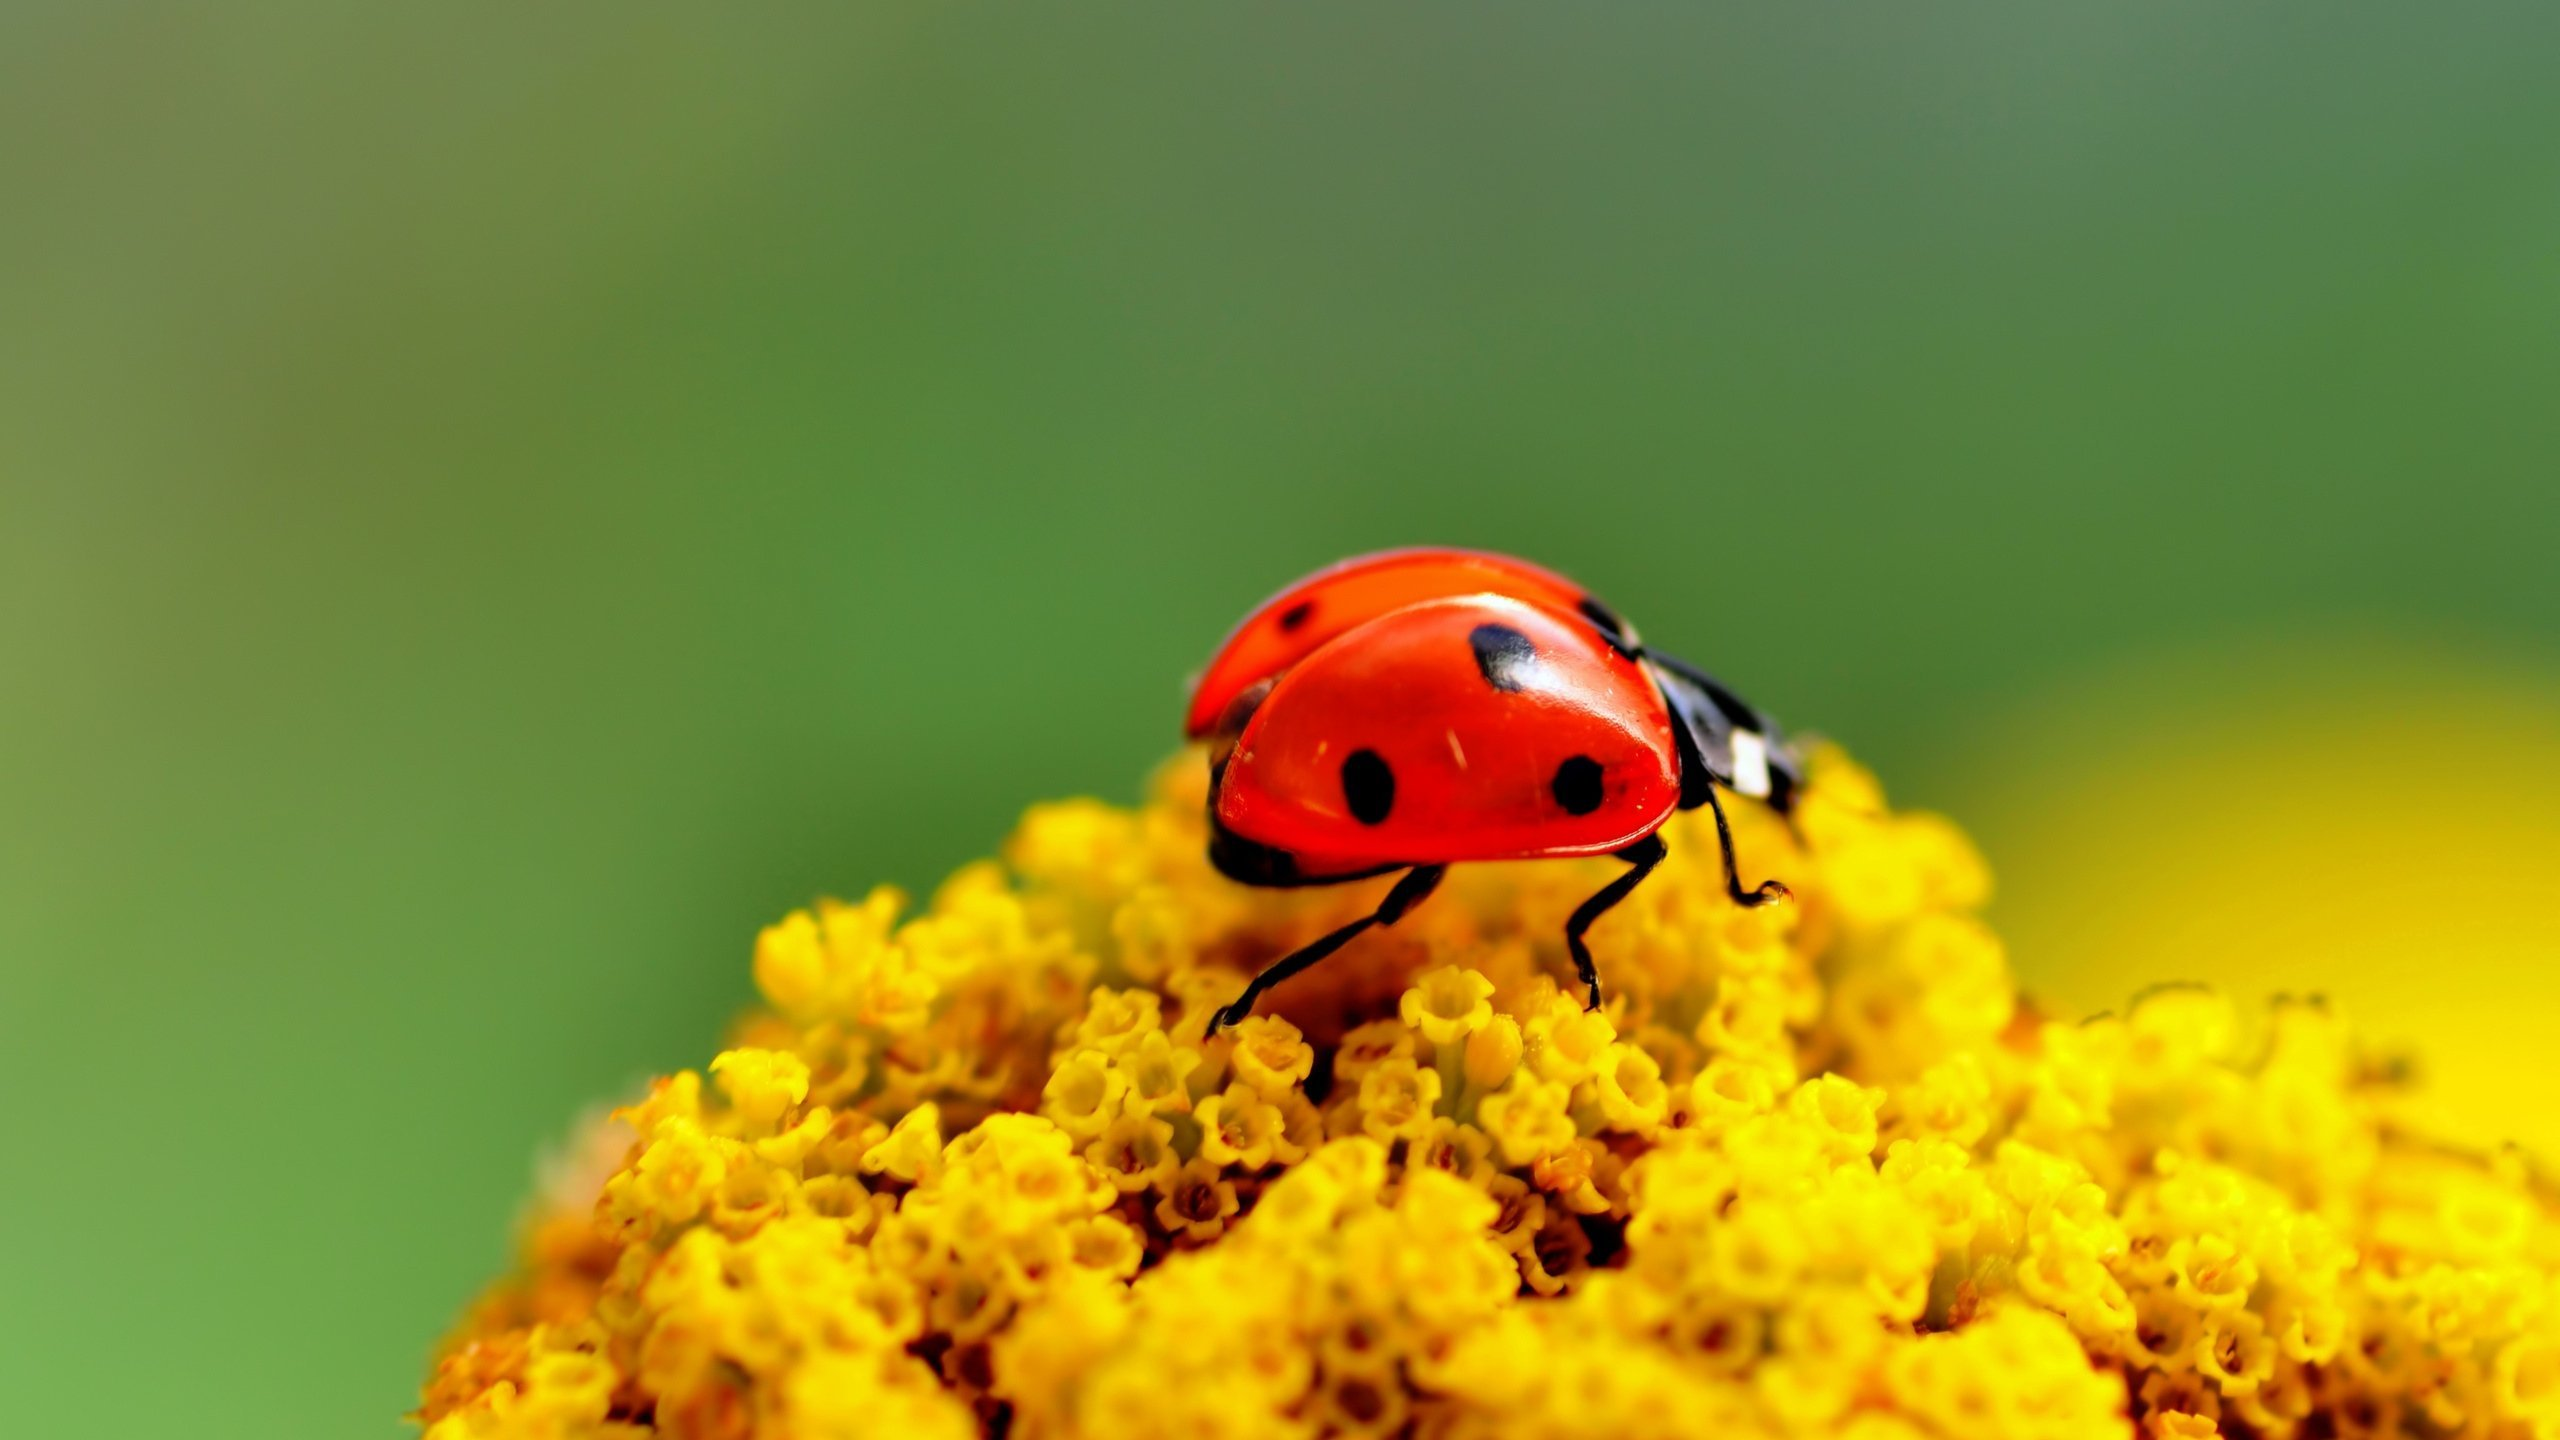 Awesome Ladybug free wallpaper ID:270420 for hd 2560x1440 computer